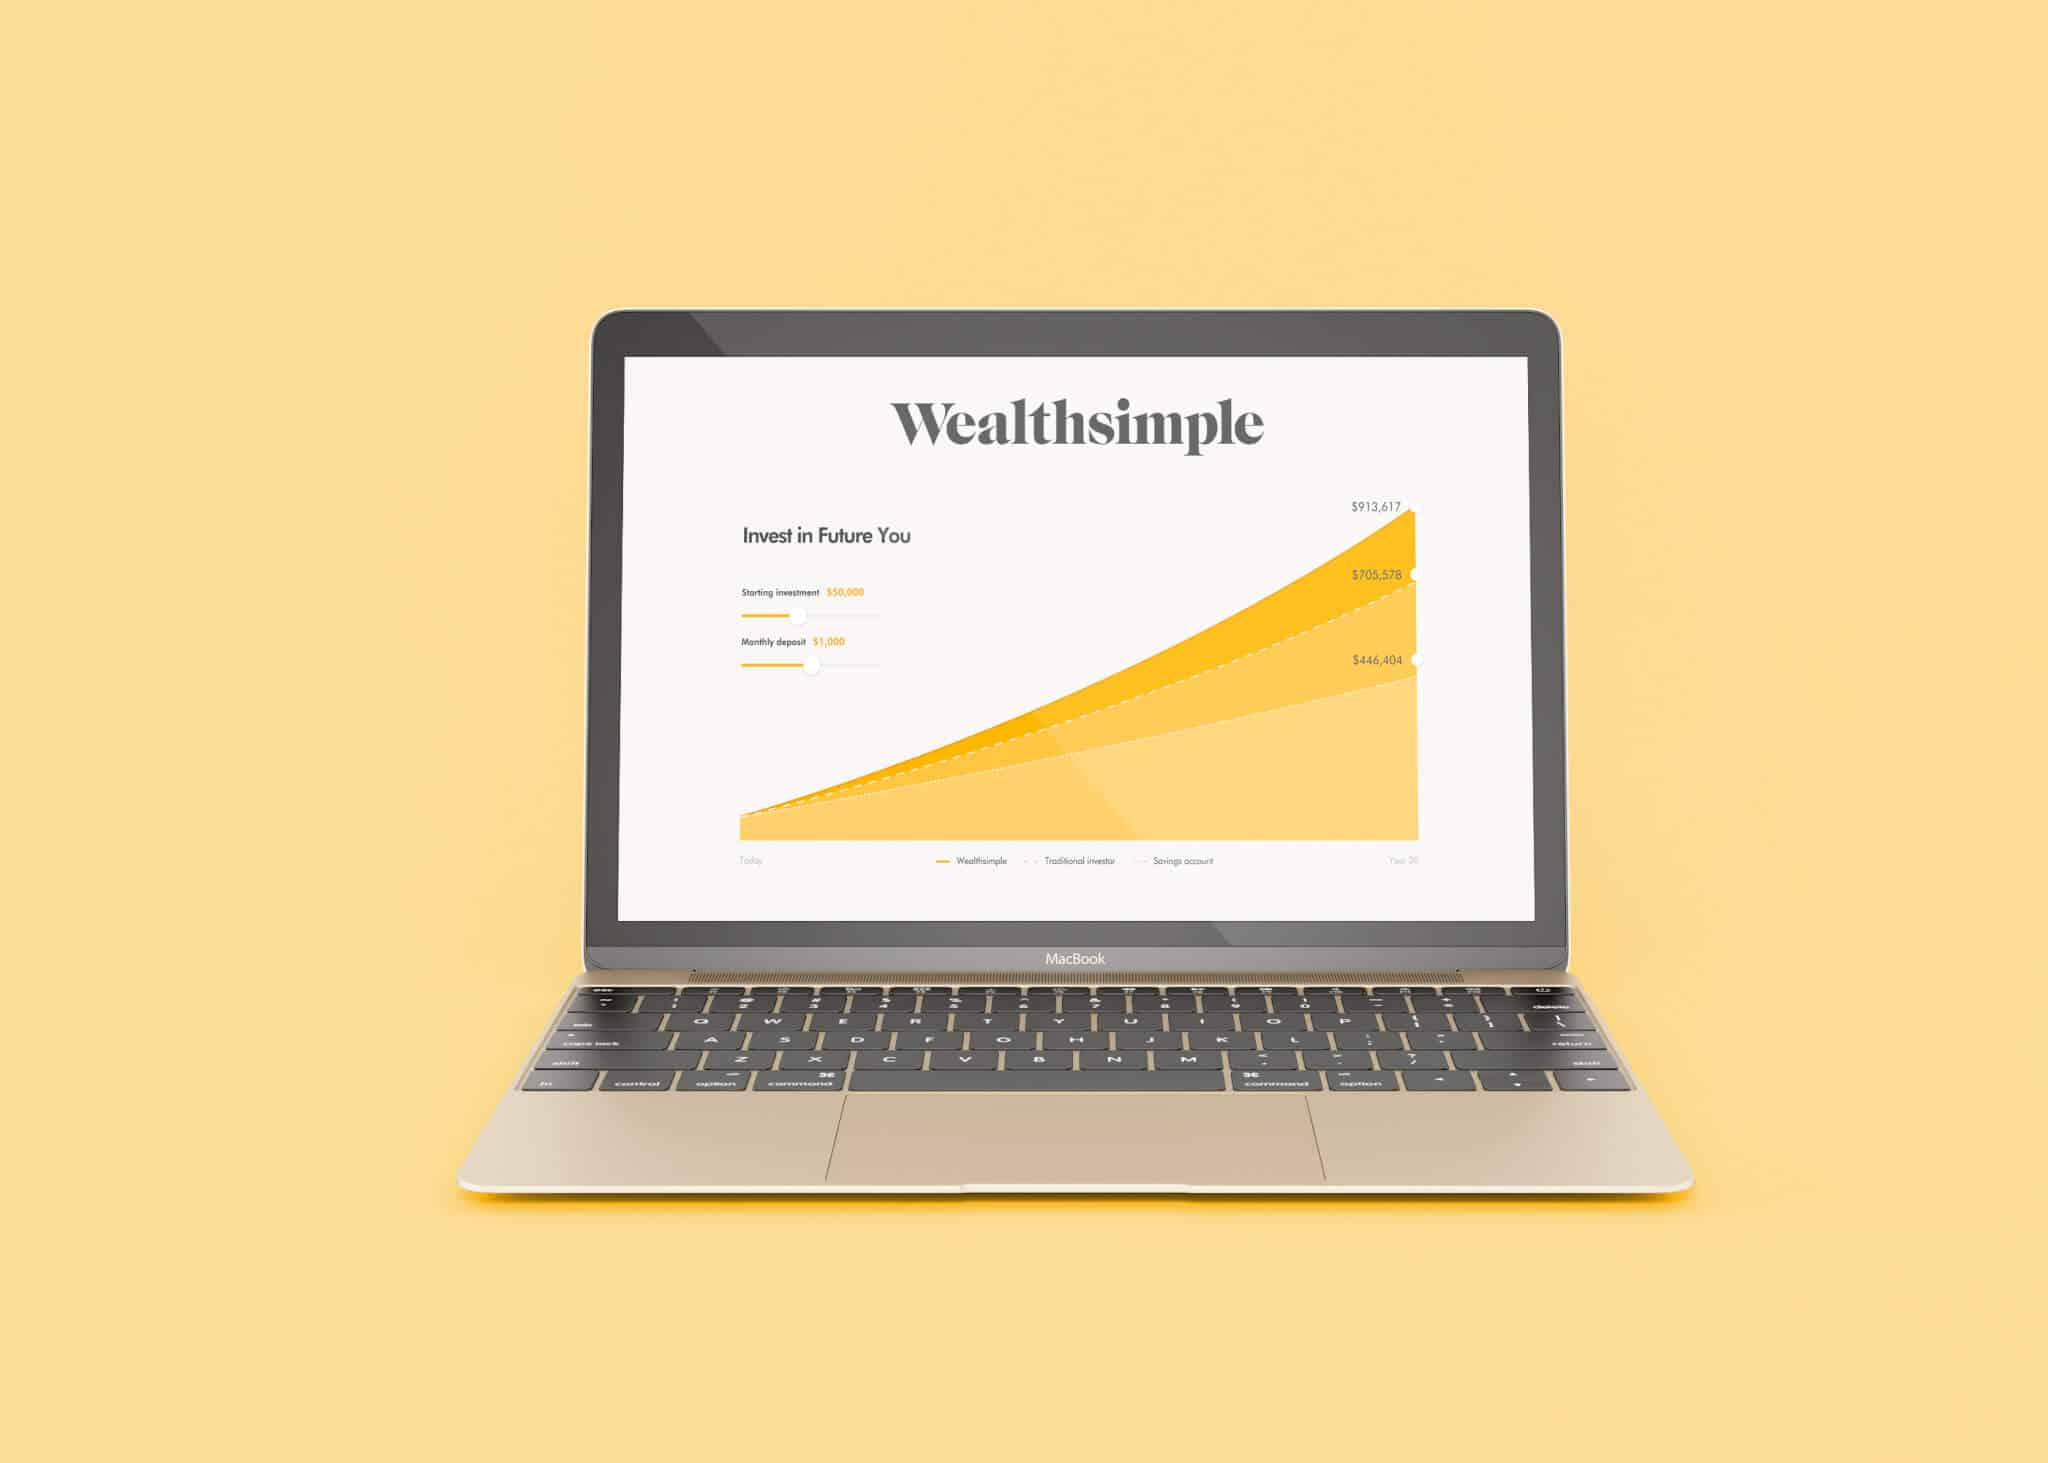 Wealthsimple $50 Sign up Bonus